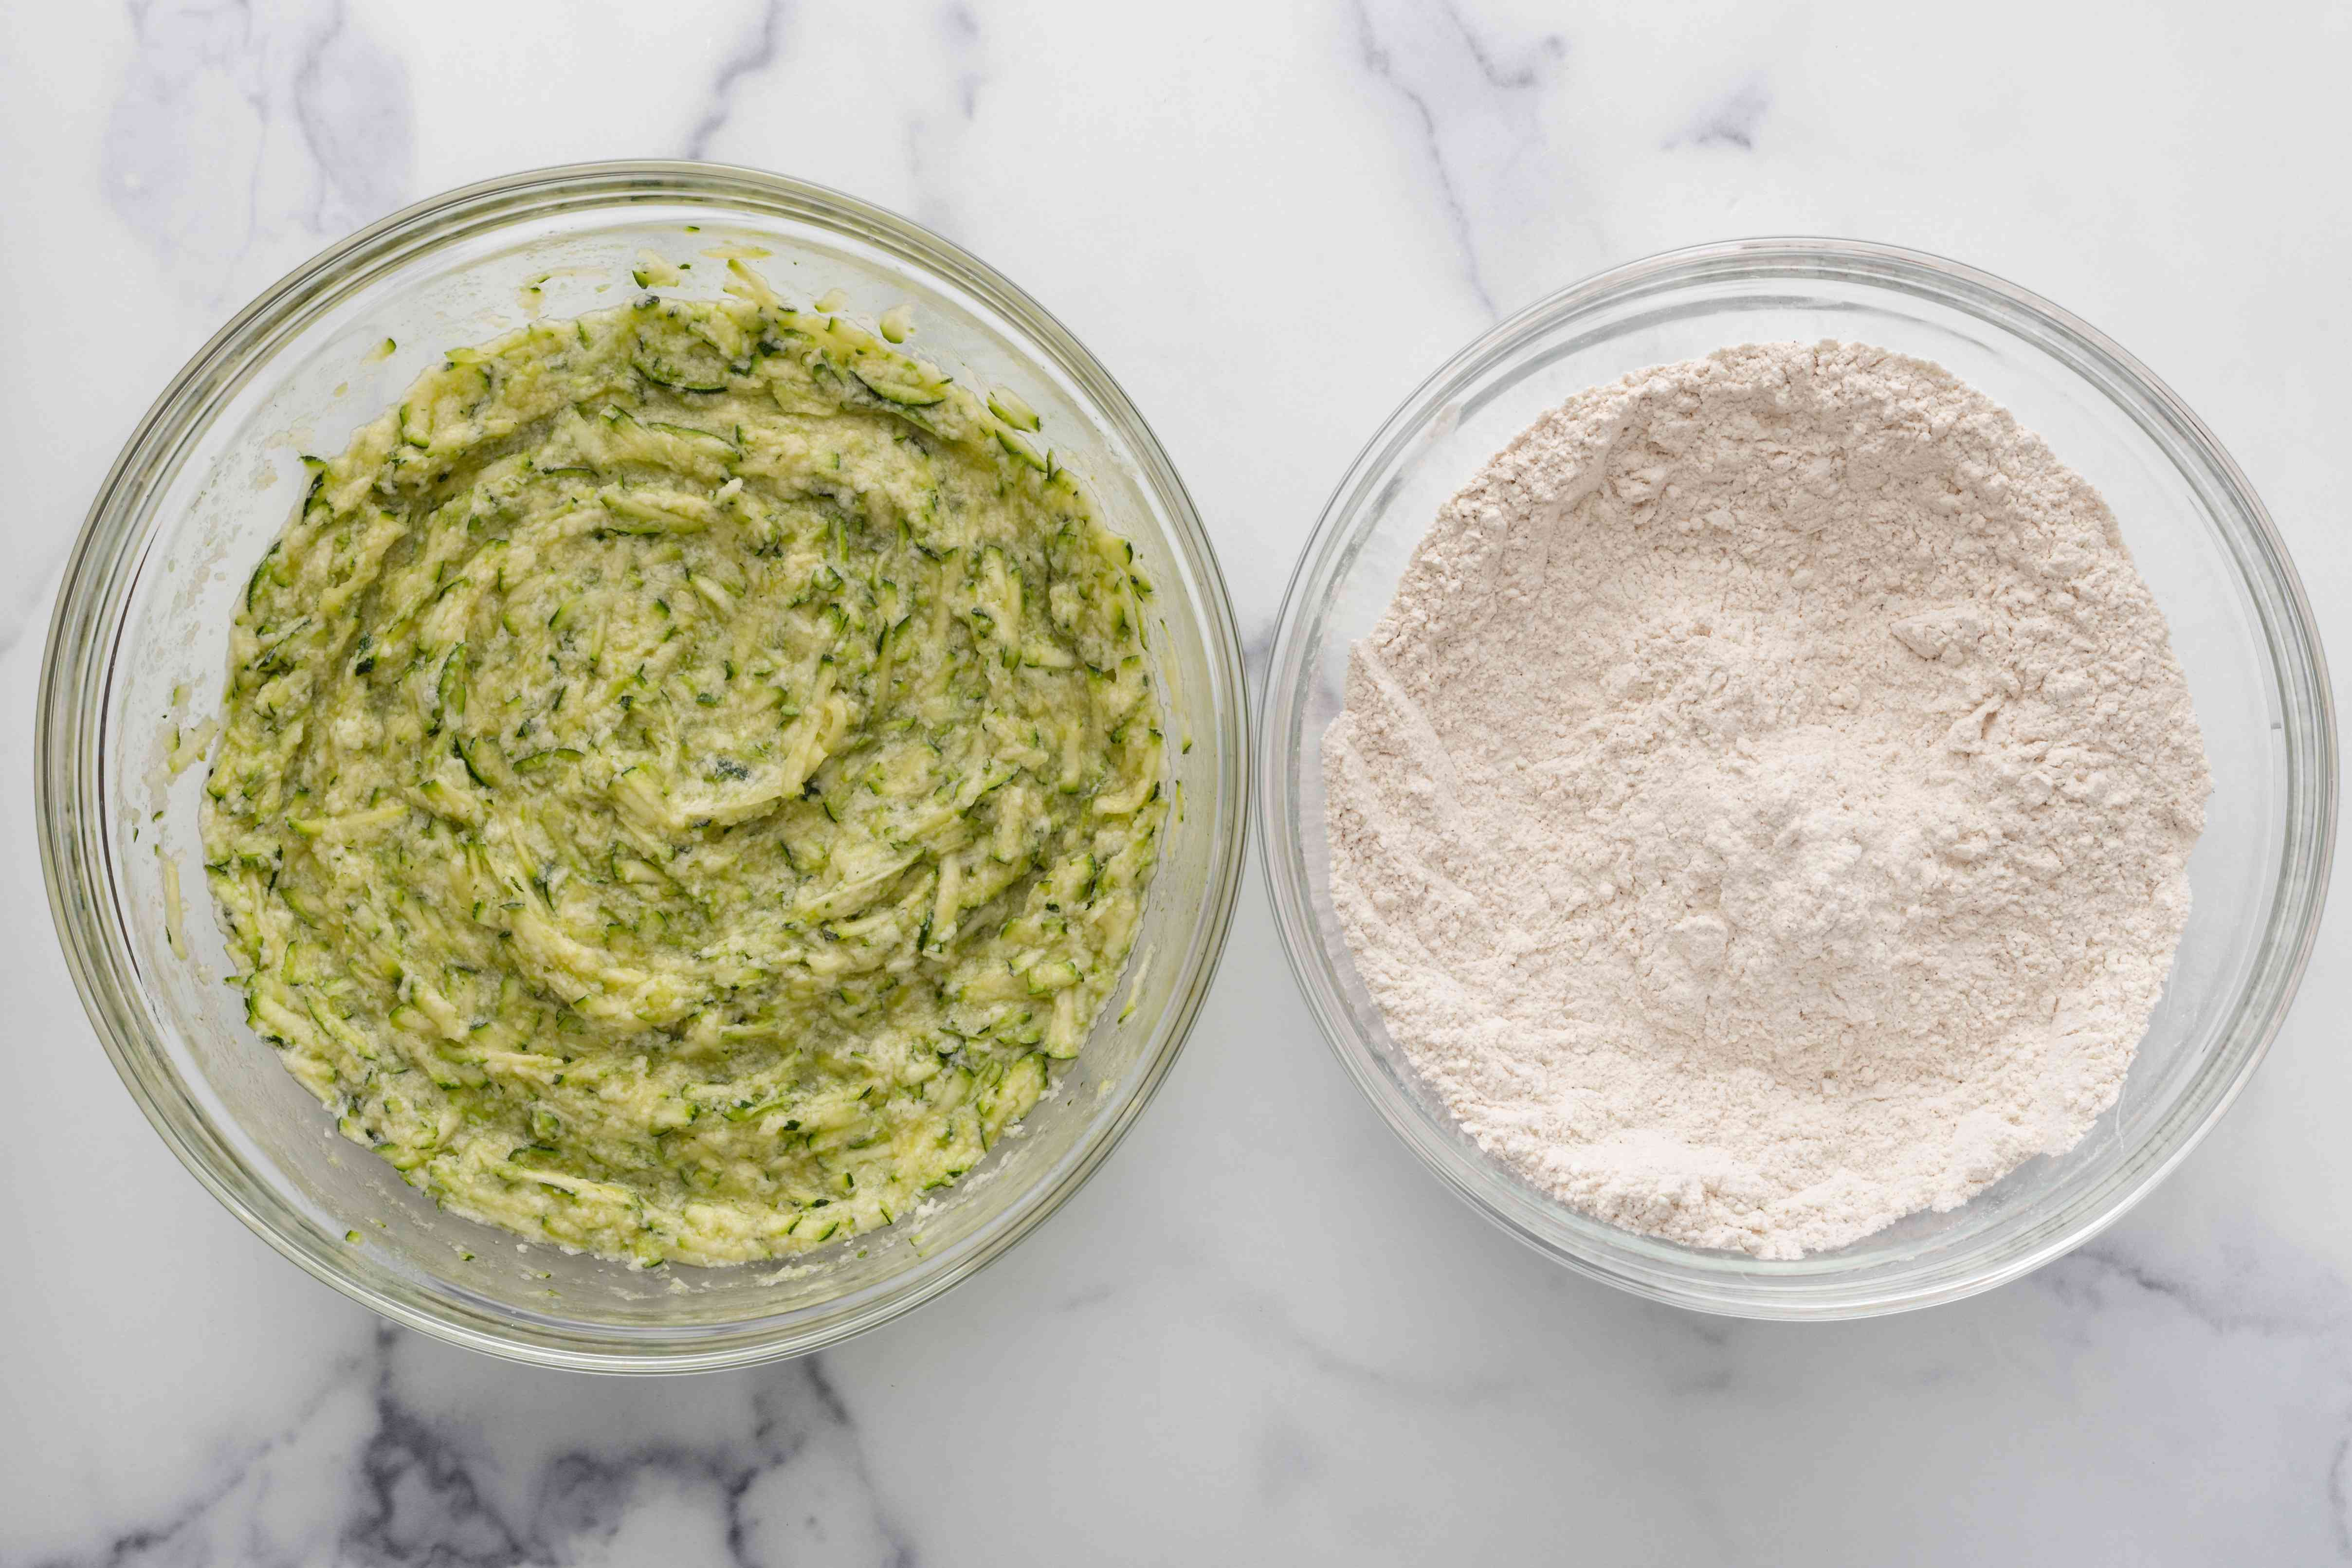 Zucchini mixture and flour mixture in set side by side to make a zucchini muffin recipe.